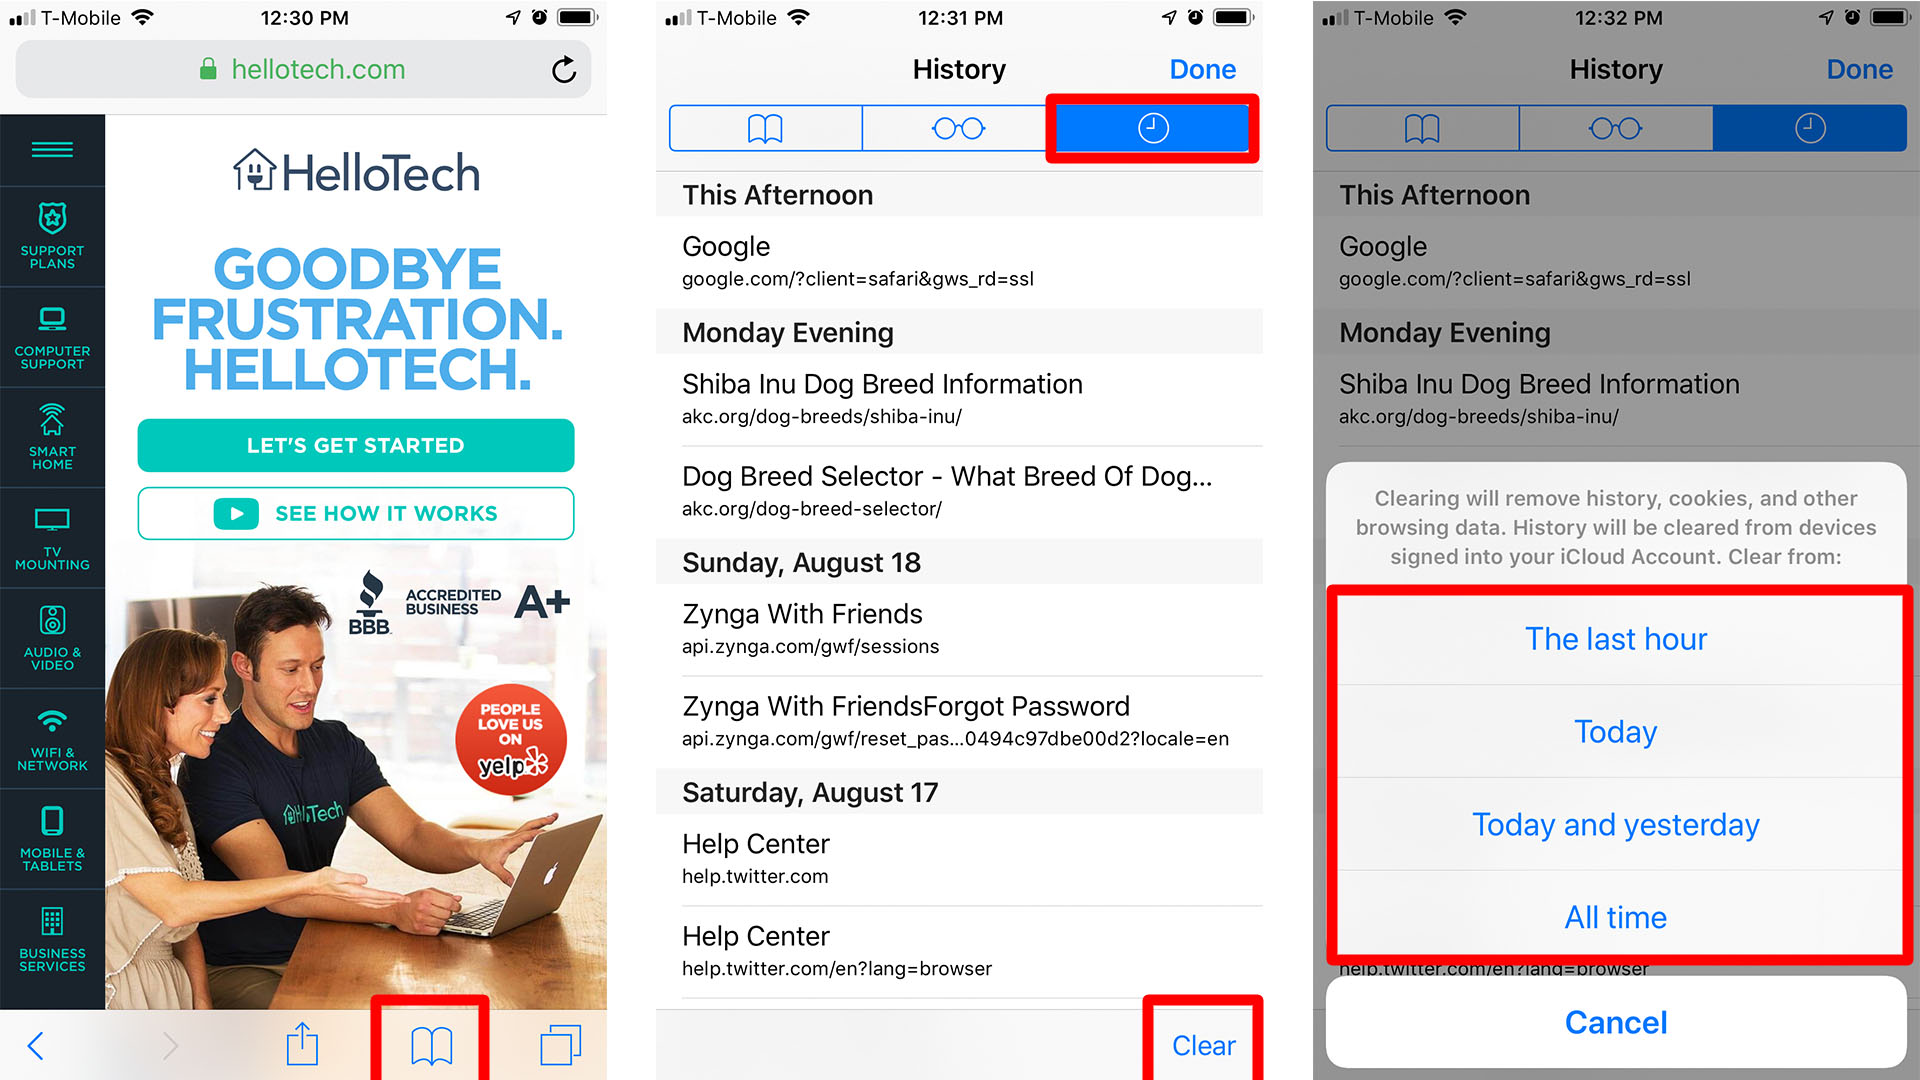 How to Clear History Based on Time Periods on Safari